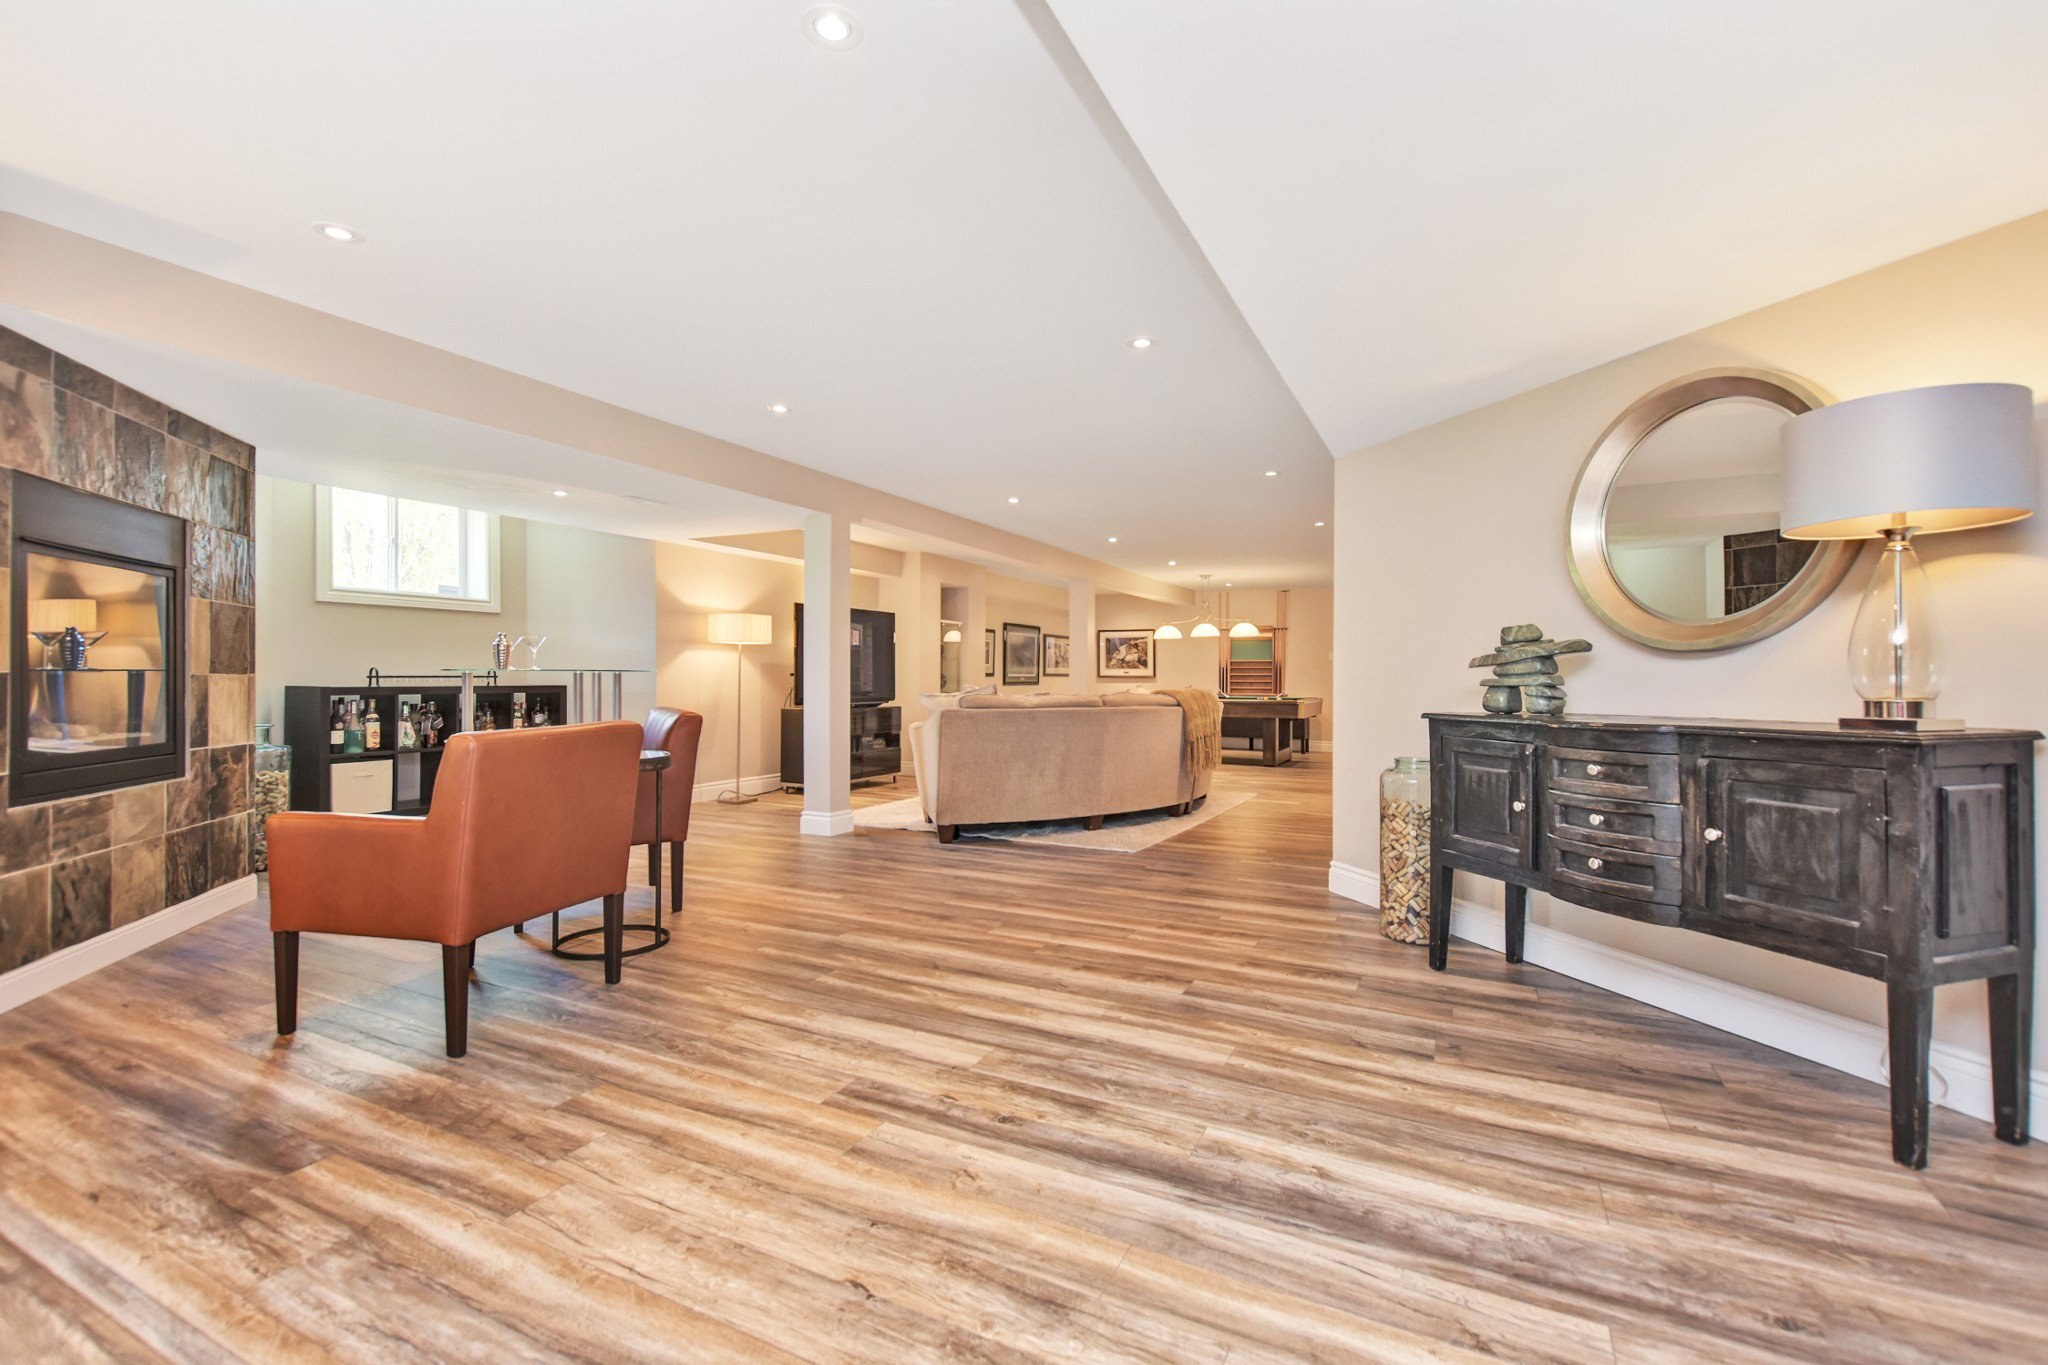 Photo 46: Photos: 1490 REINDEER WAY.: Greely House for sale (Ottawa)  : MLS®# 1109530